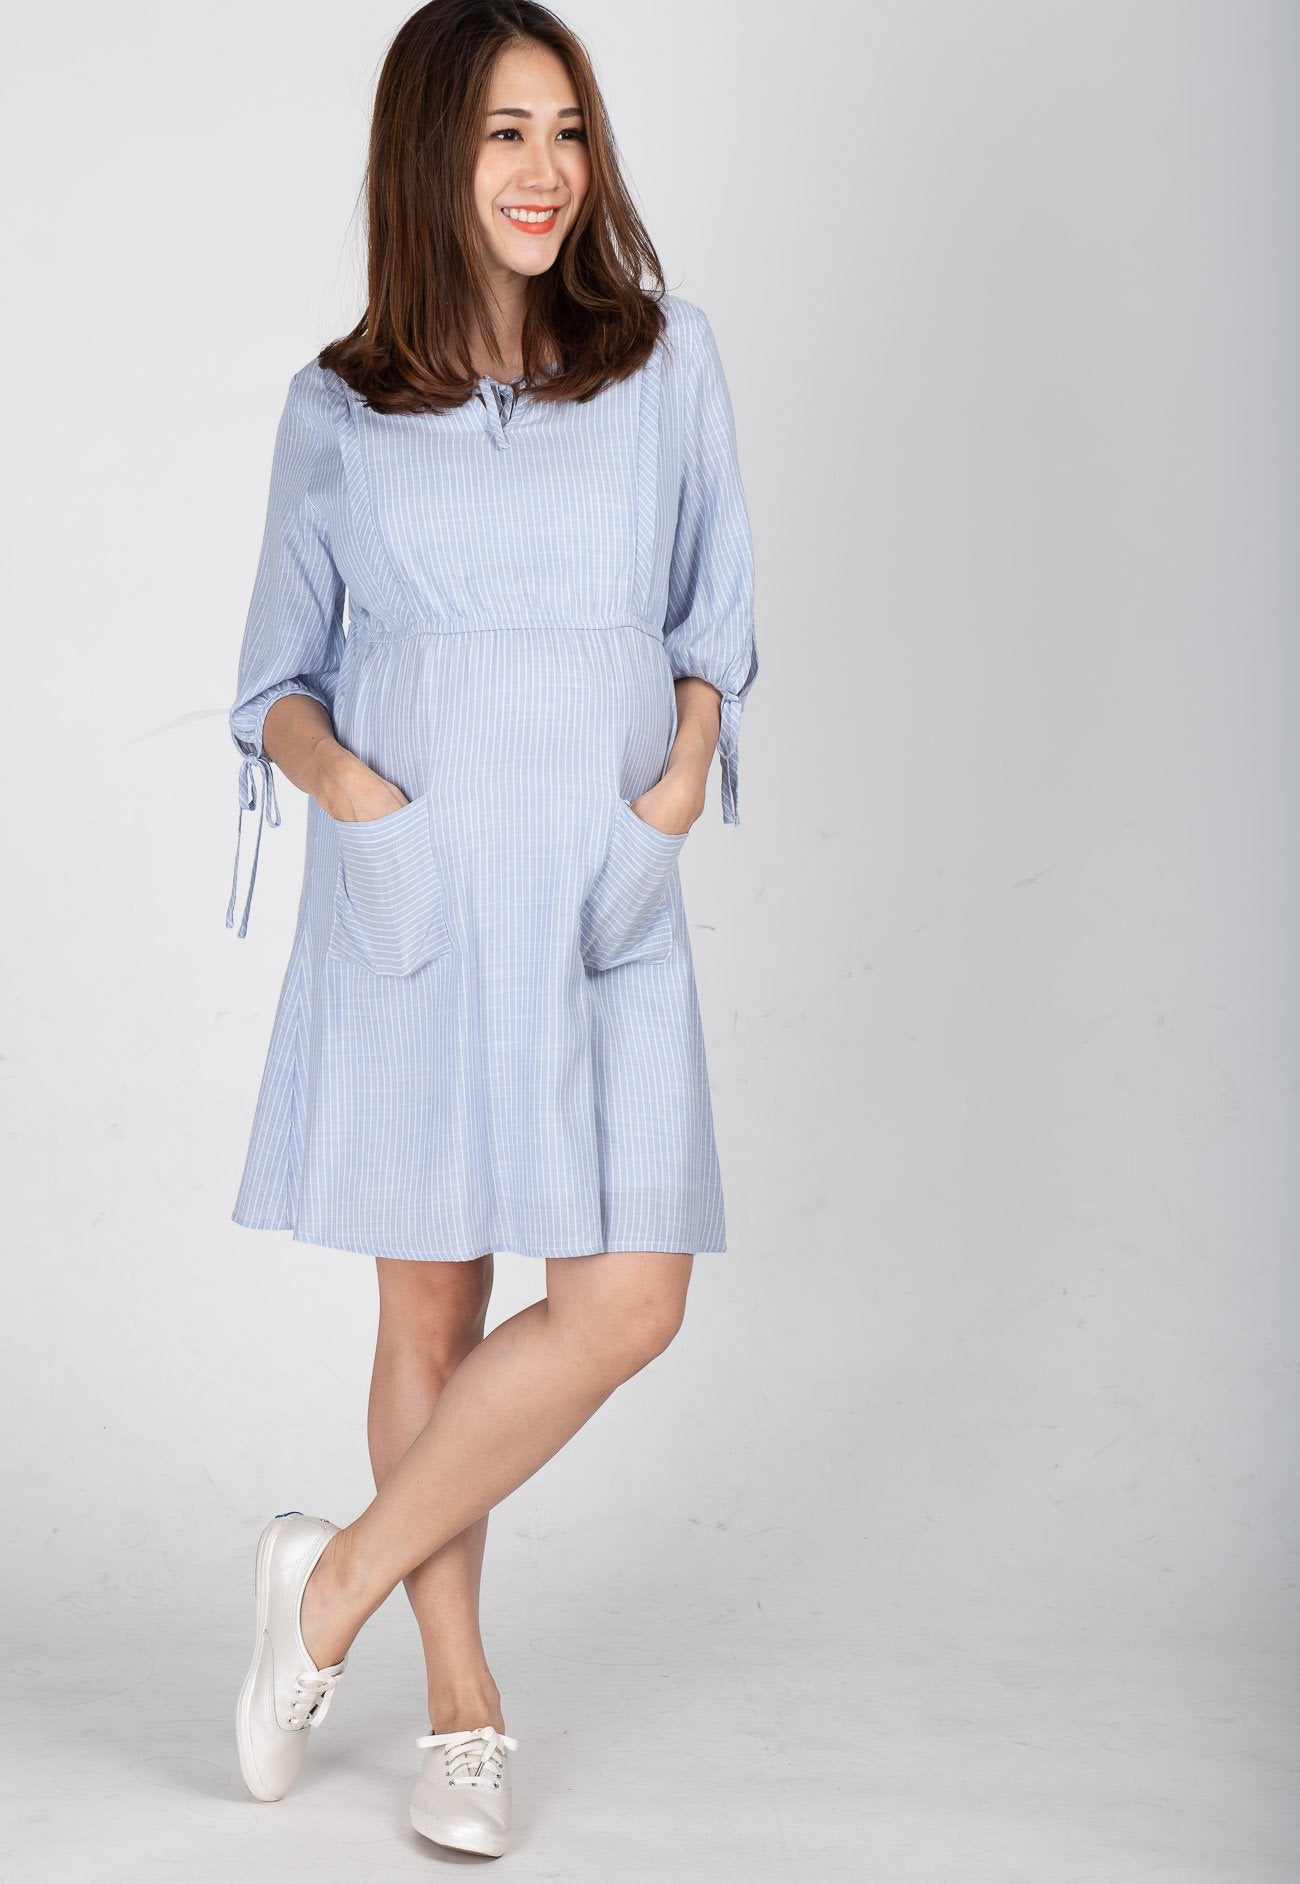 Mothercot Sweetheart Striped Nursing Dress  by JumpEatCry - Maternity and nursing wear